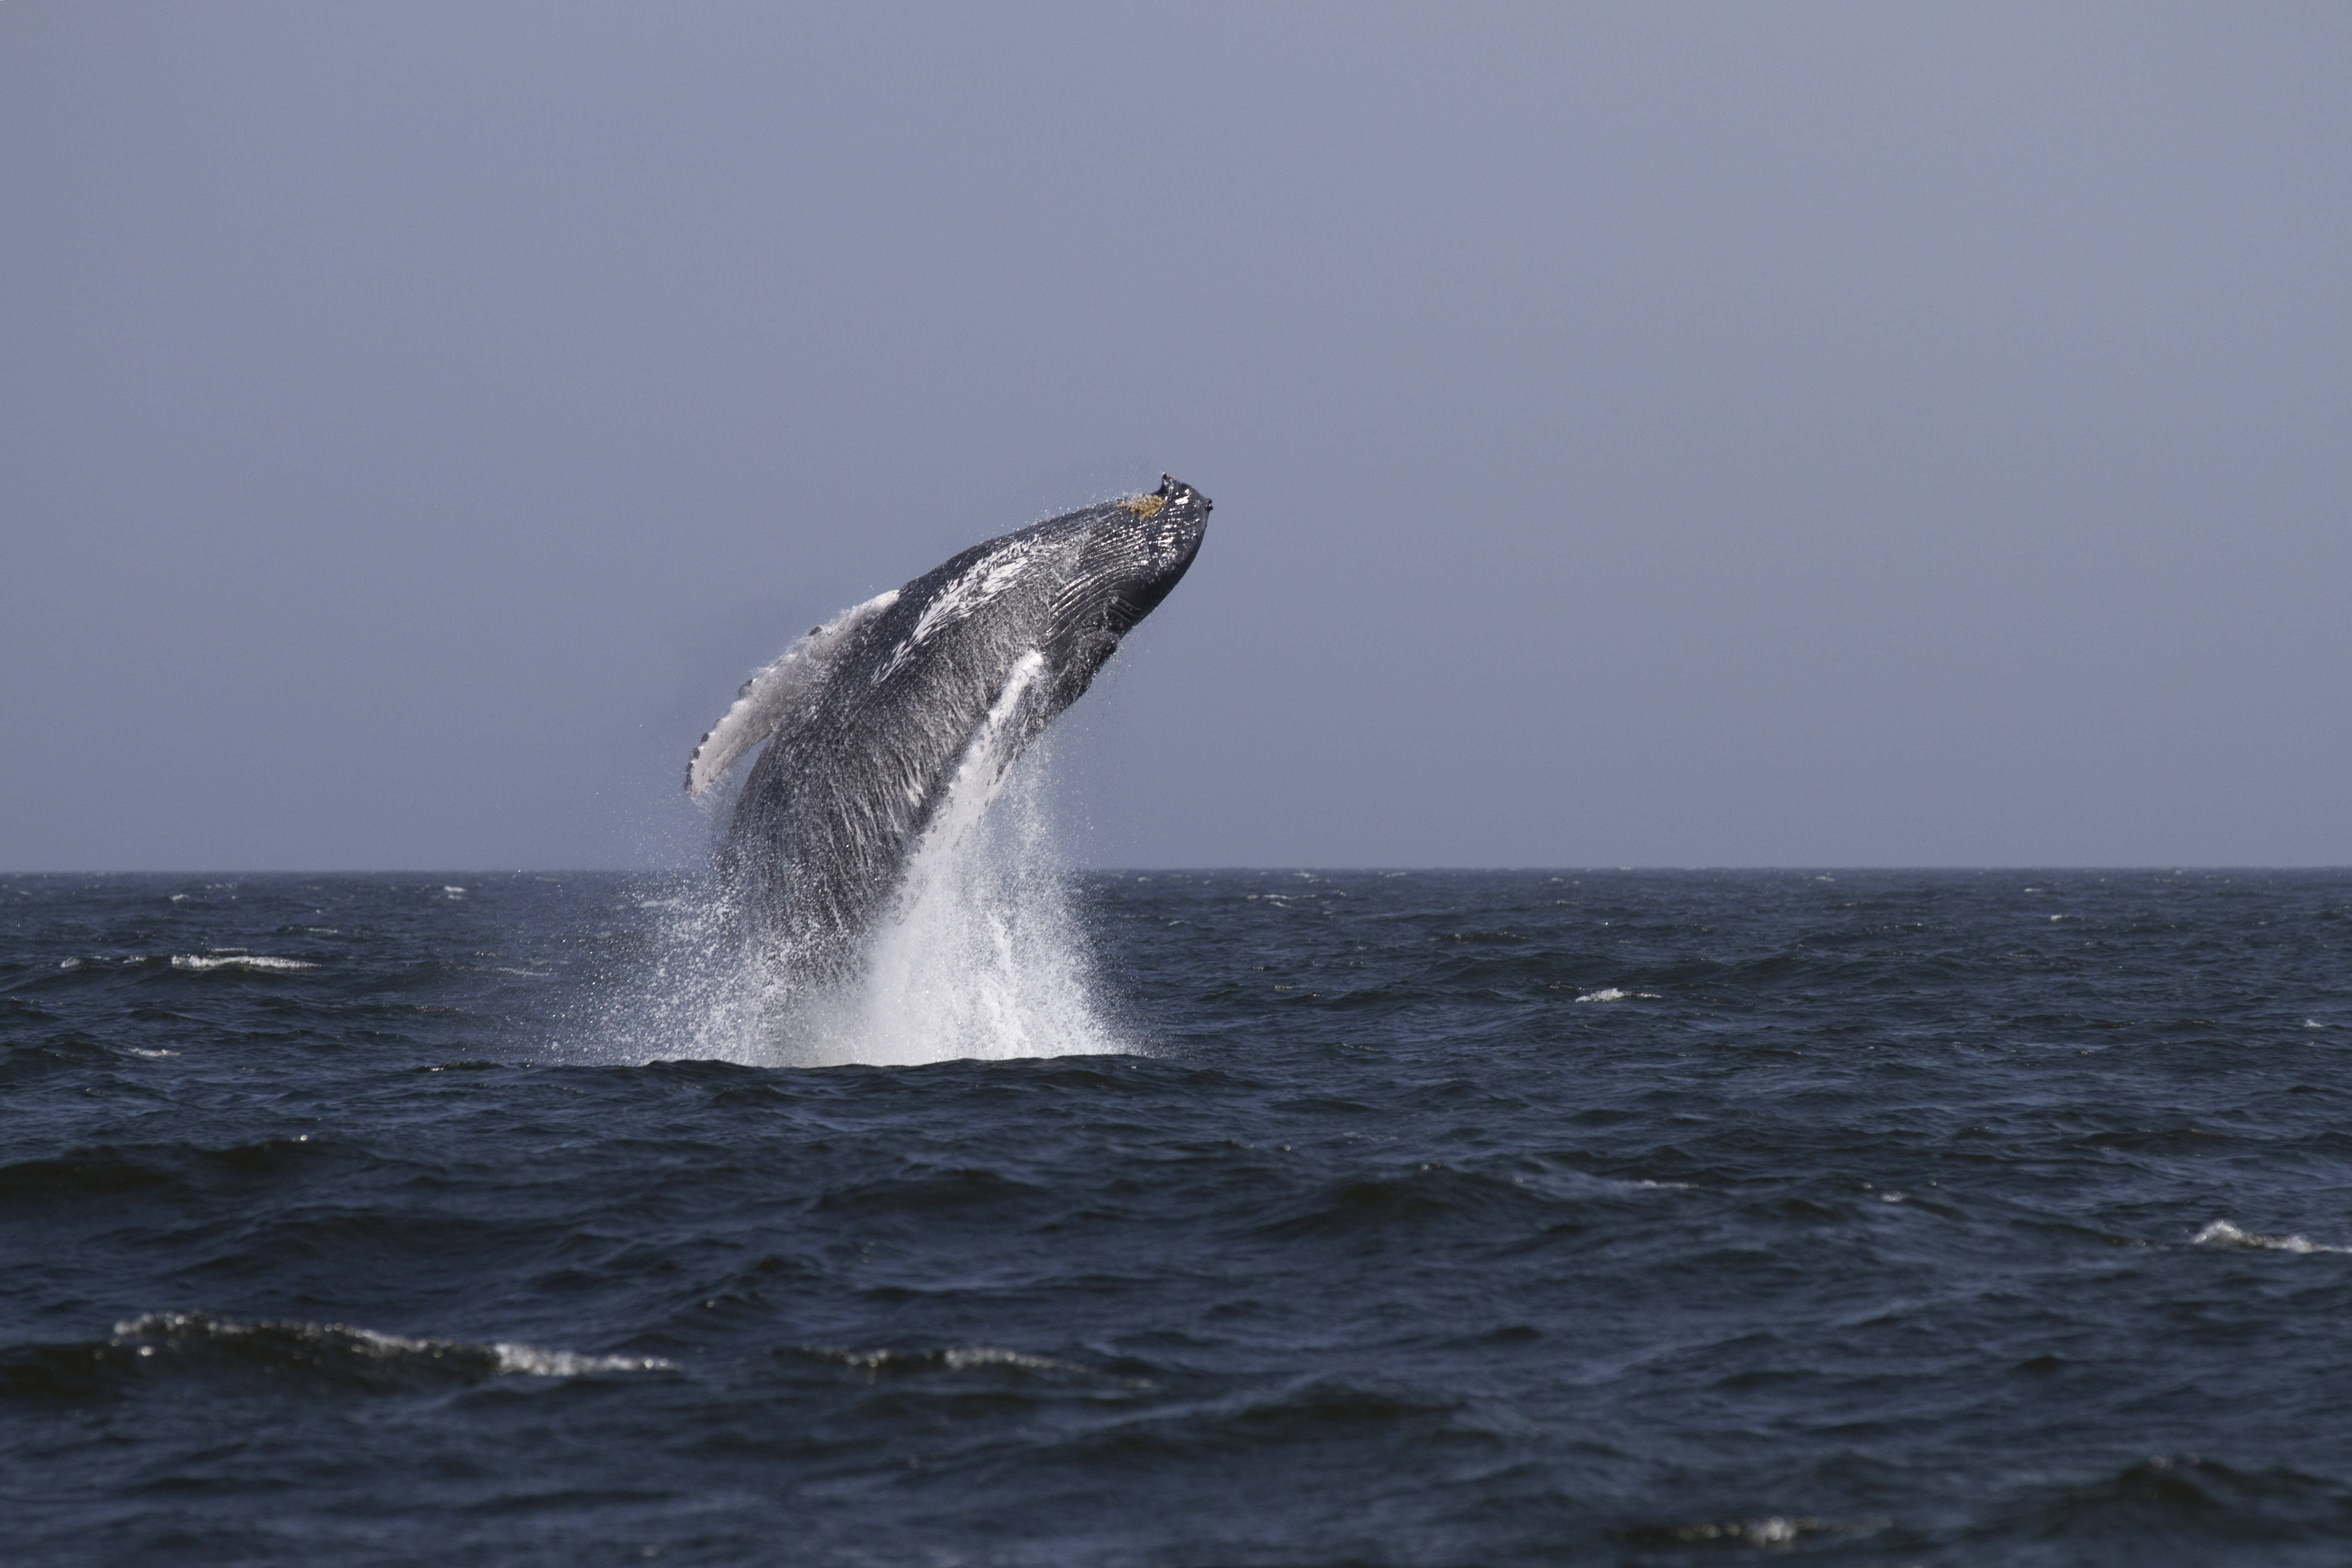 Humpback whale breaches 3 miles off of Rockaway Beach on August 31, 2014 in New York City